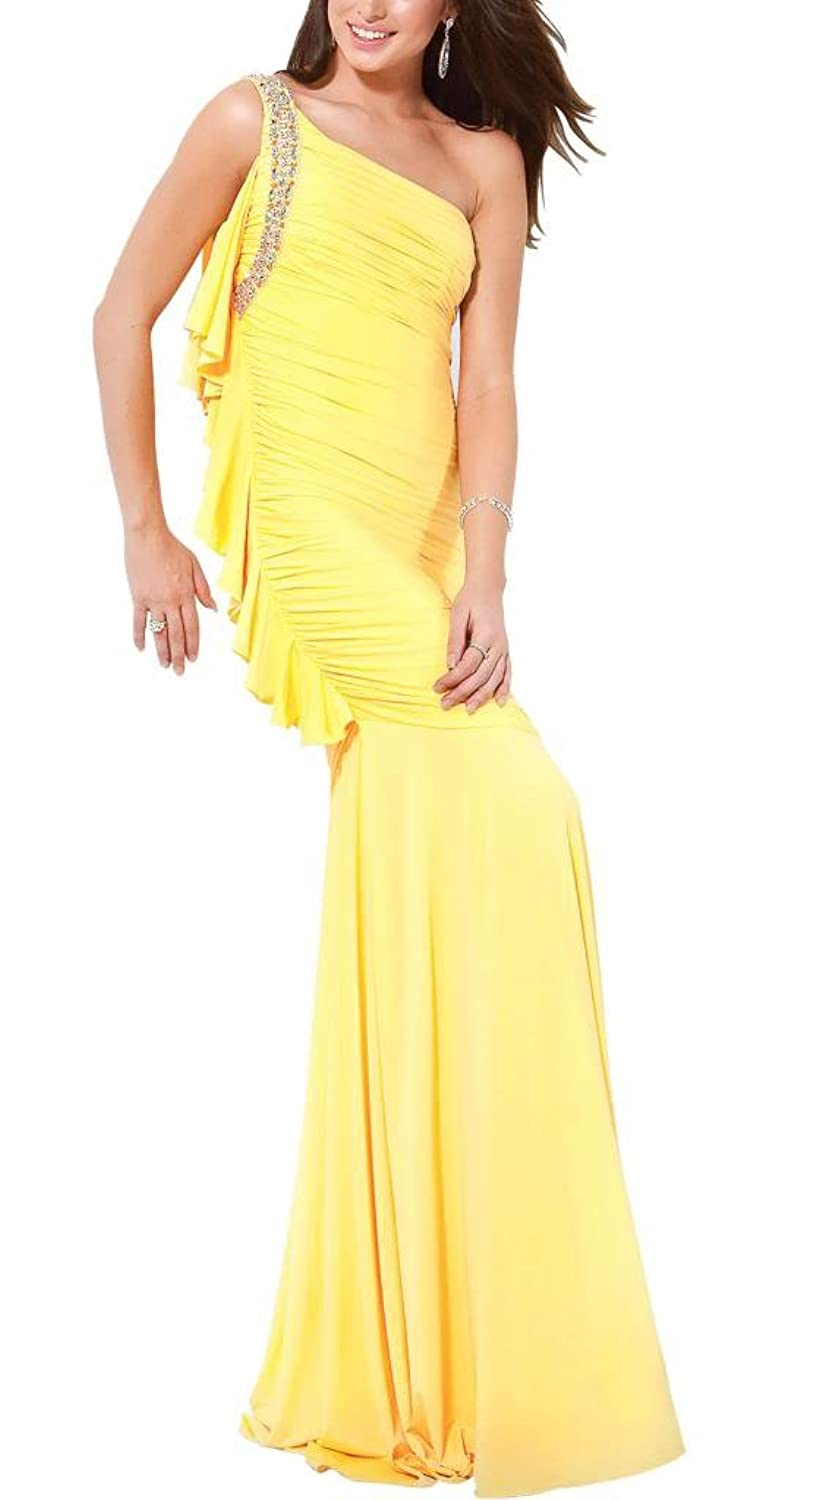 GEORGE BRIDE Exquisite Yellow Slim-Line One-Shoulder Beading long Prom Dress